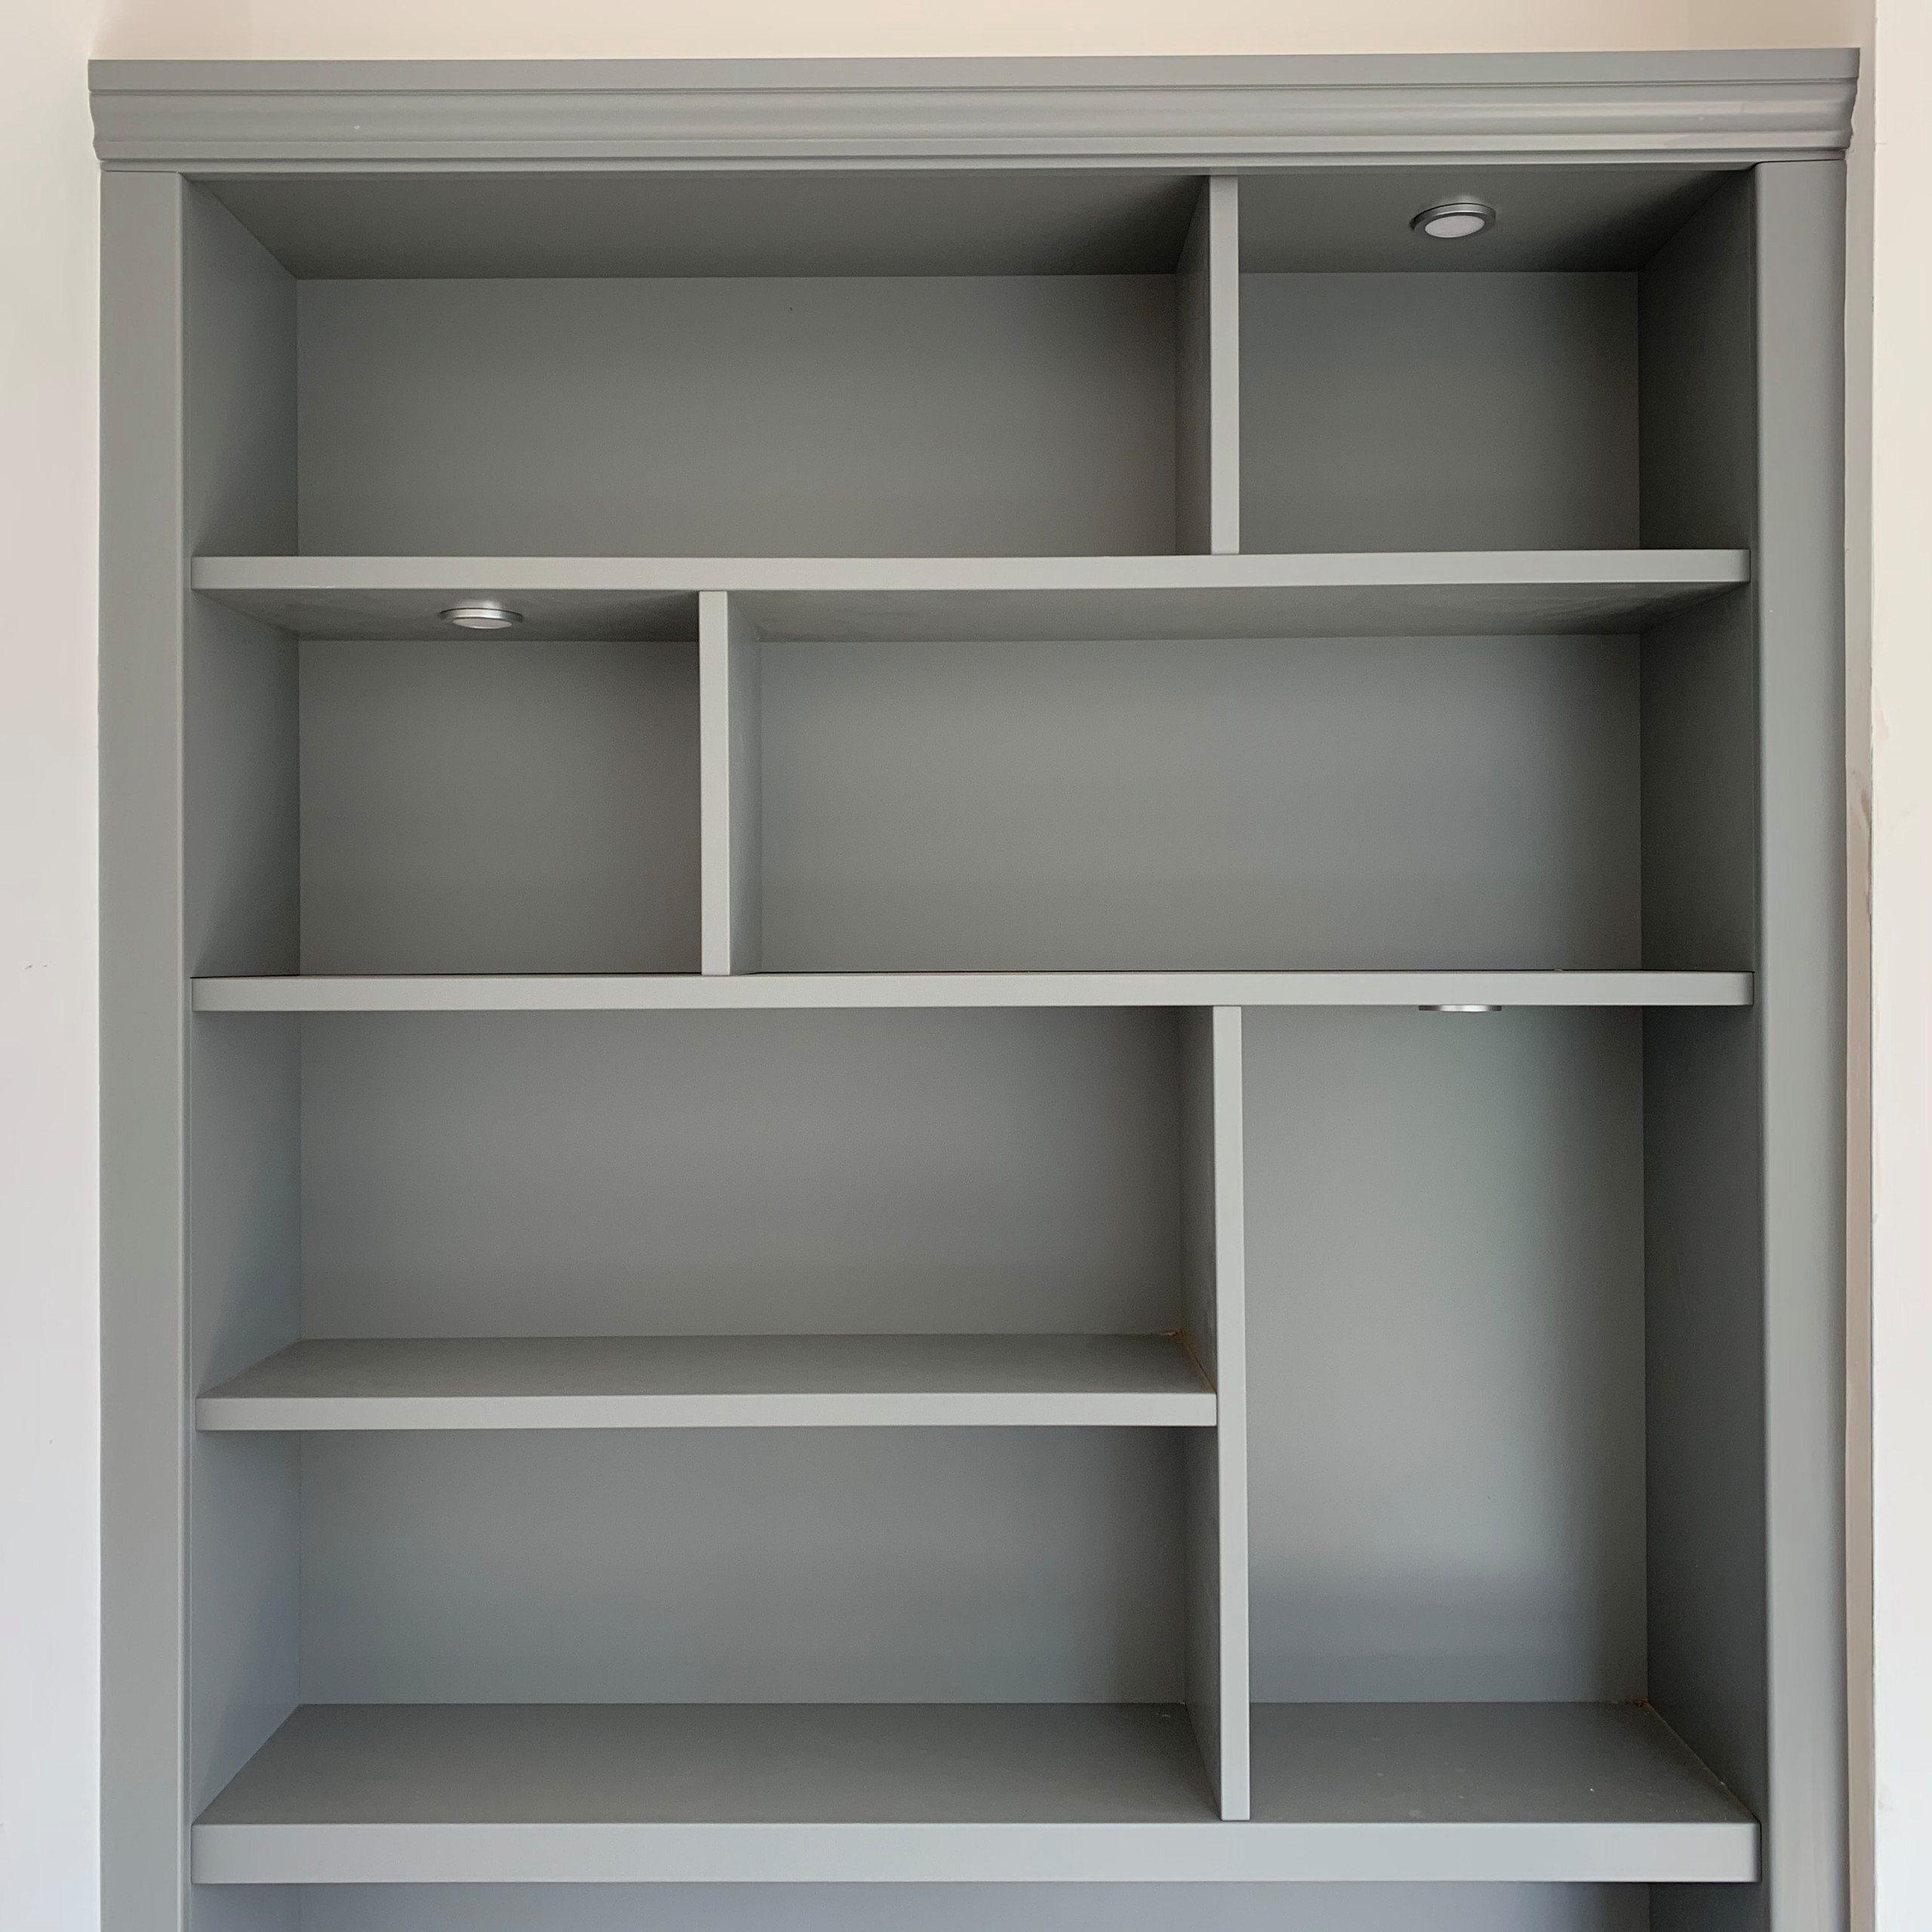 Classic grey bookcase shelving with lighting and dividers